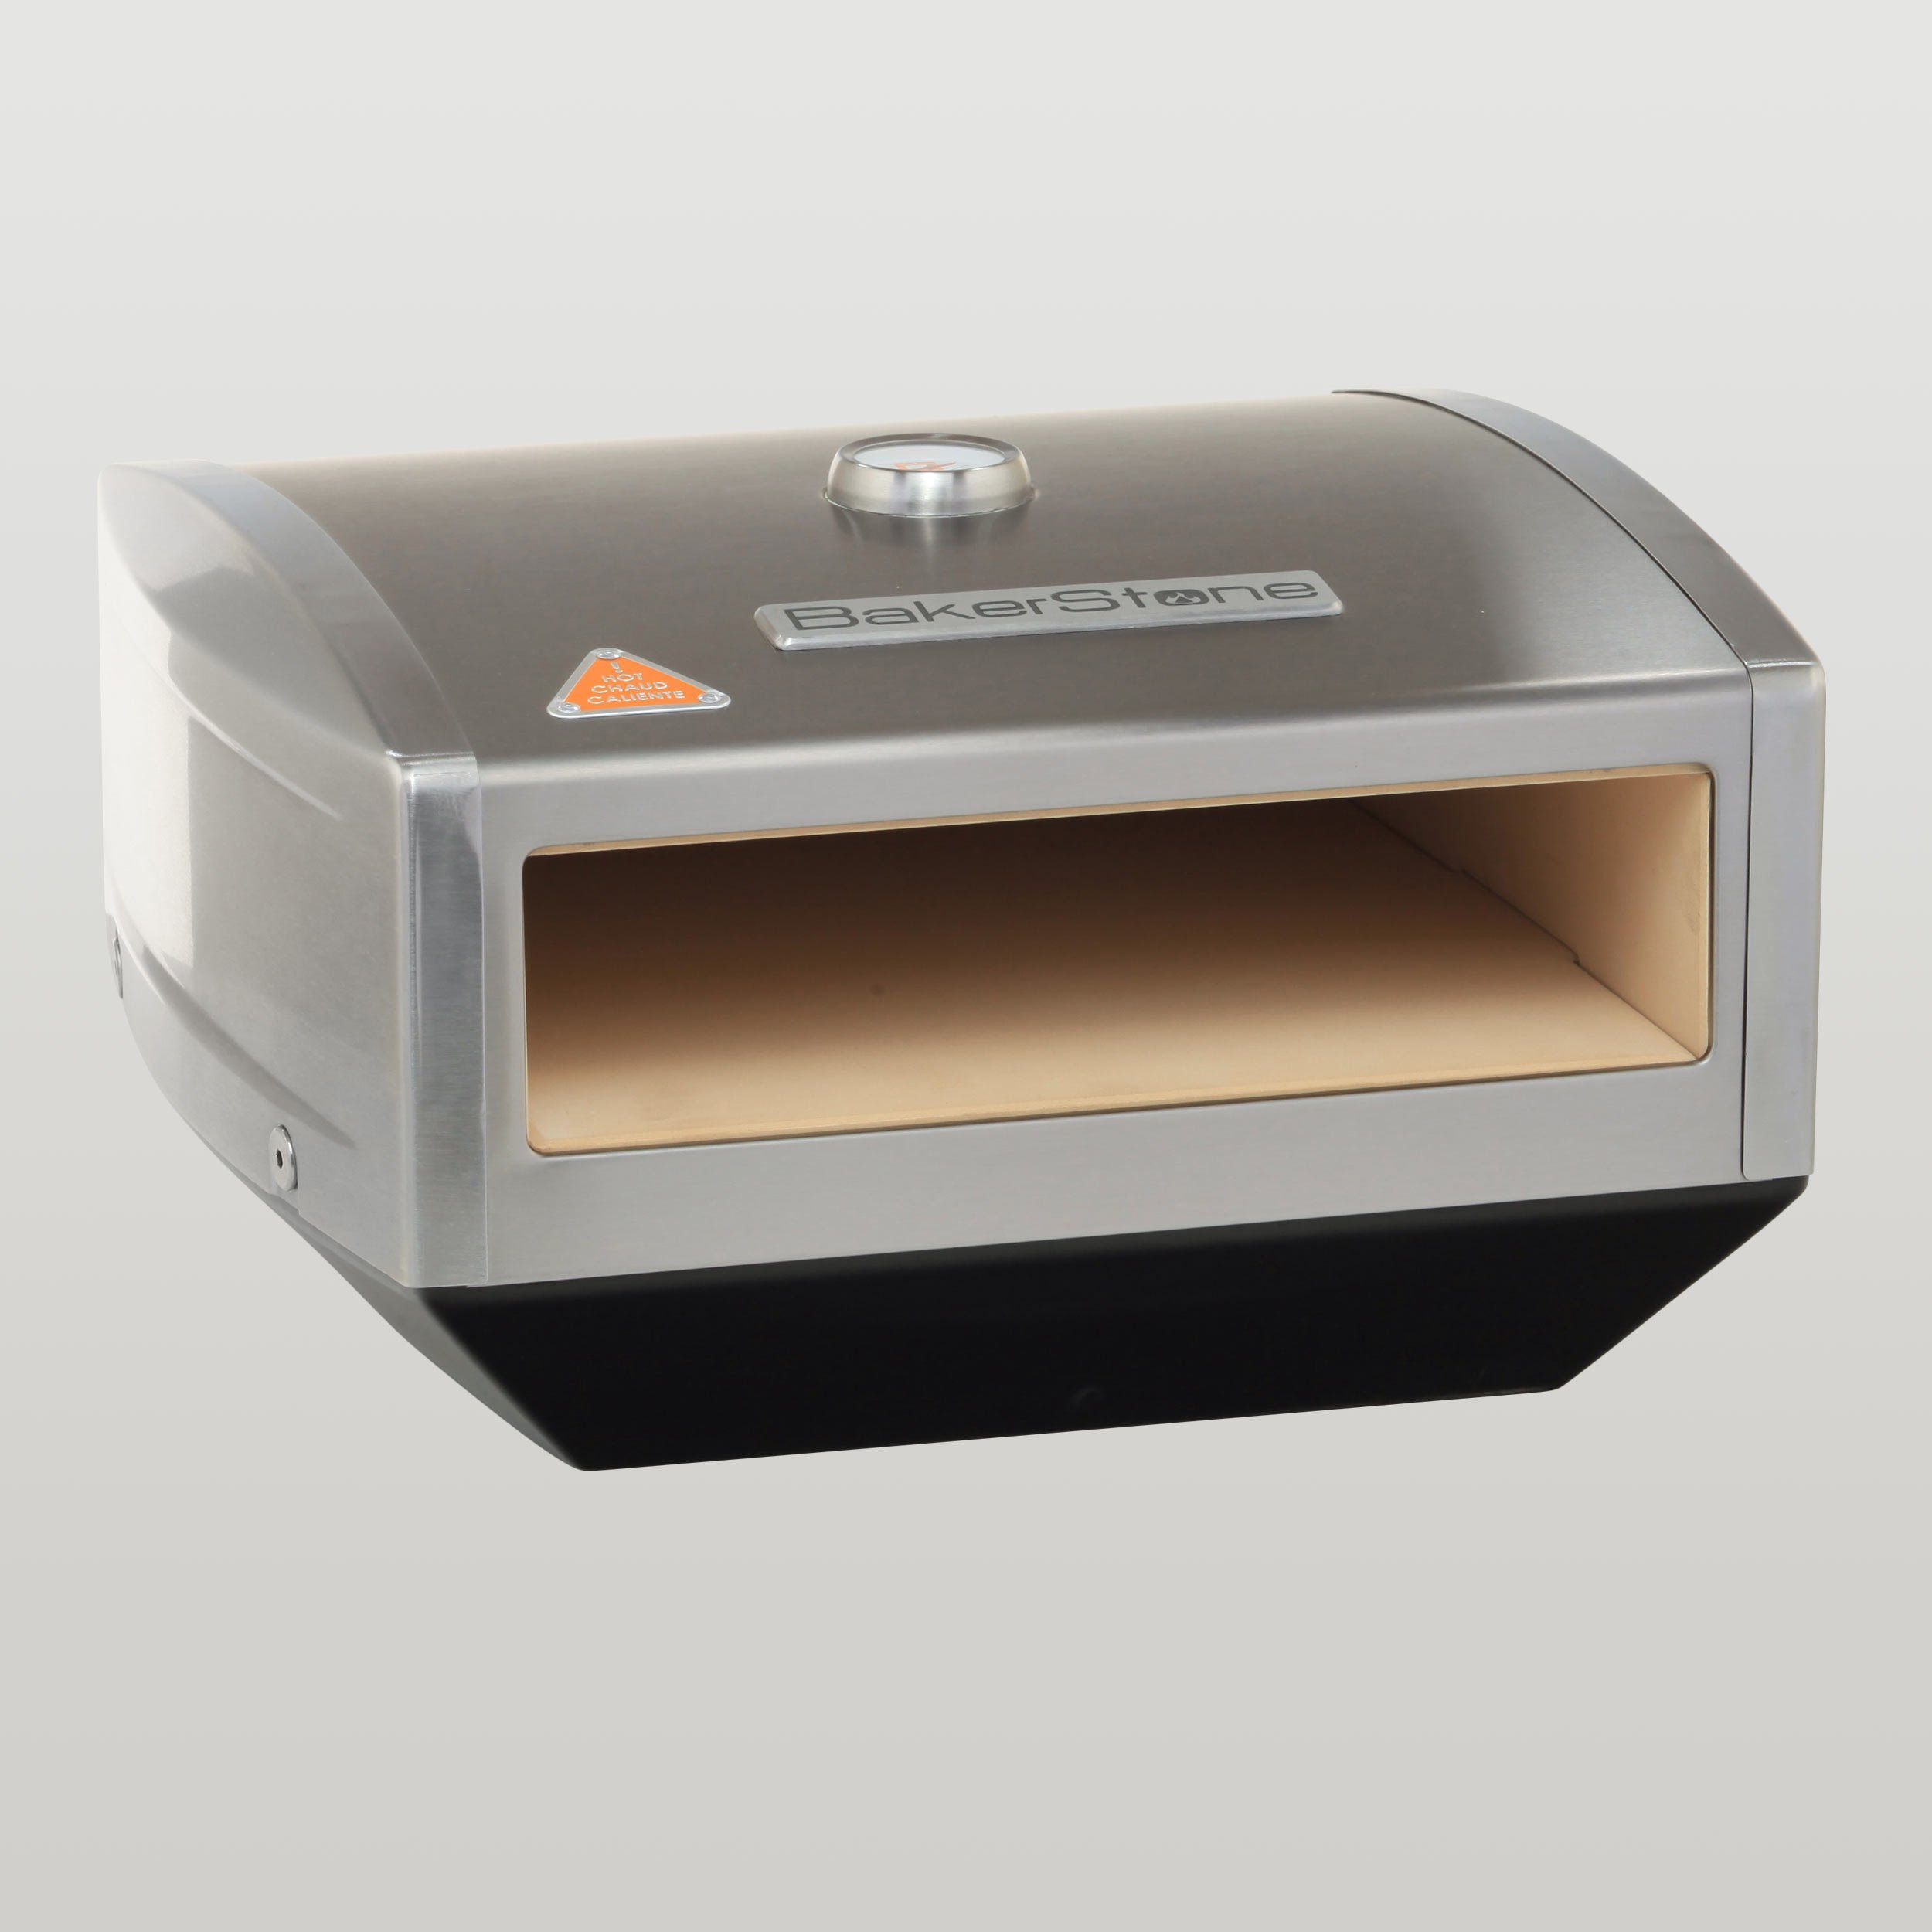 BakerStone Pizza Box, Gas Stove Top Oven (Stainless Steel) by BakerStone (Image #6)